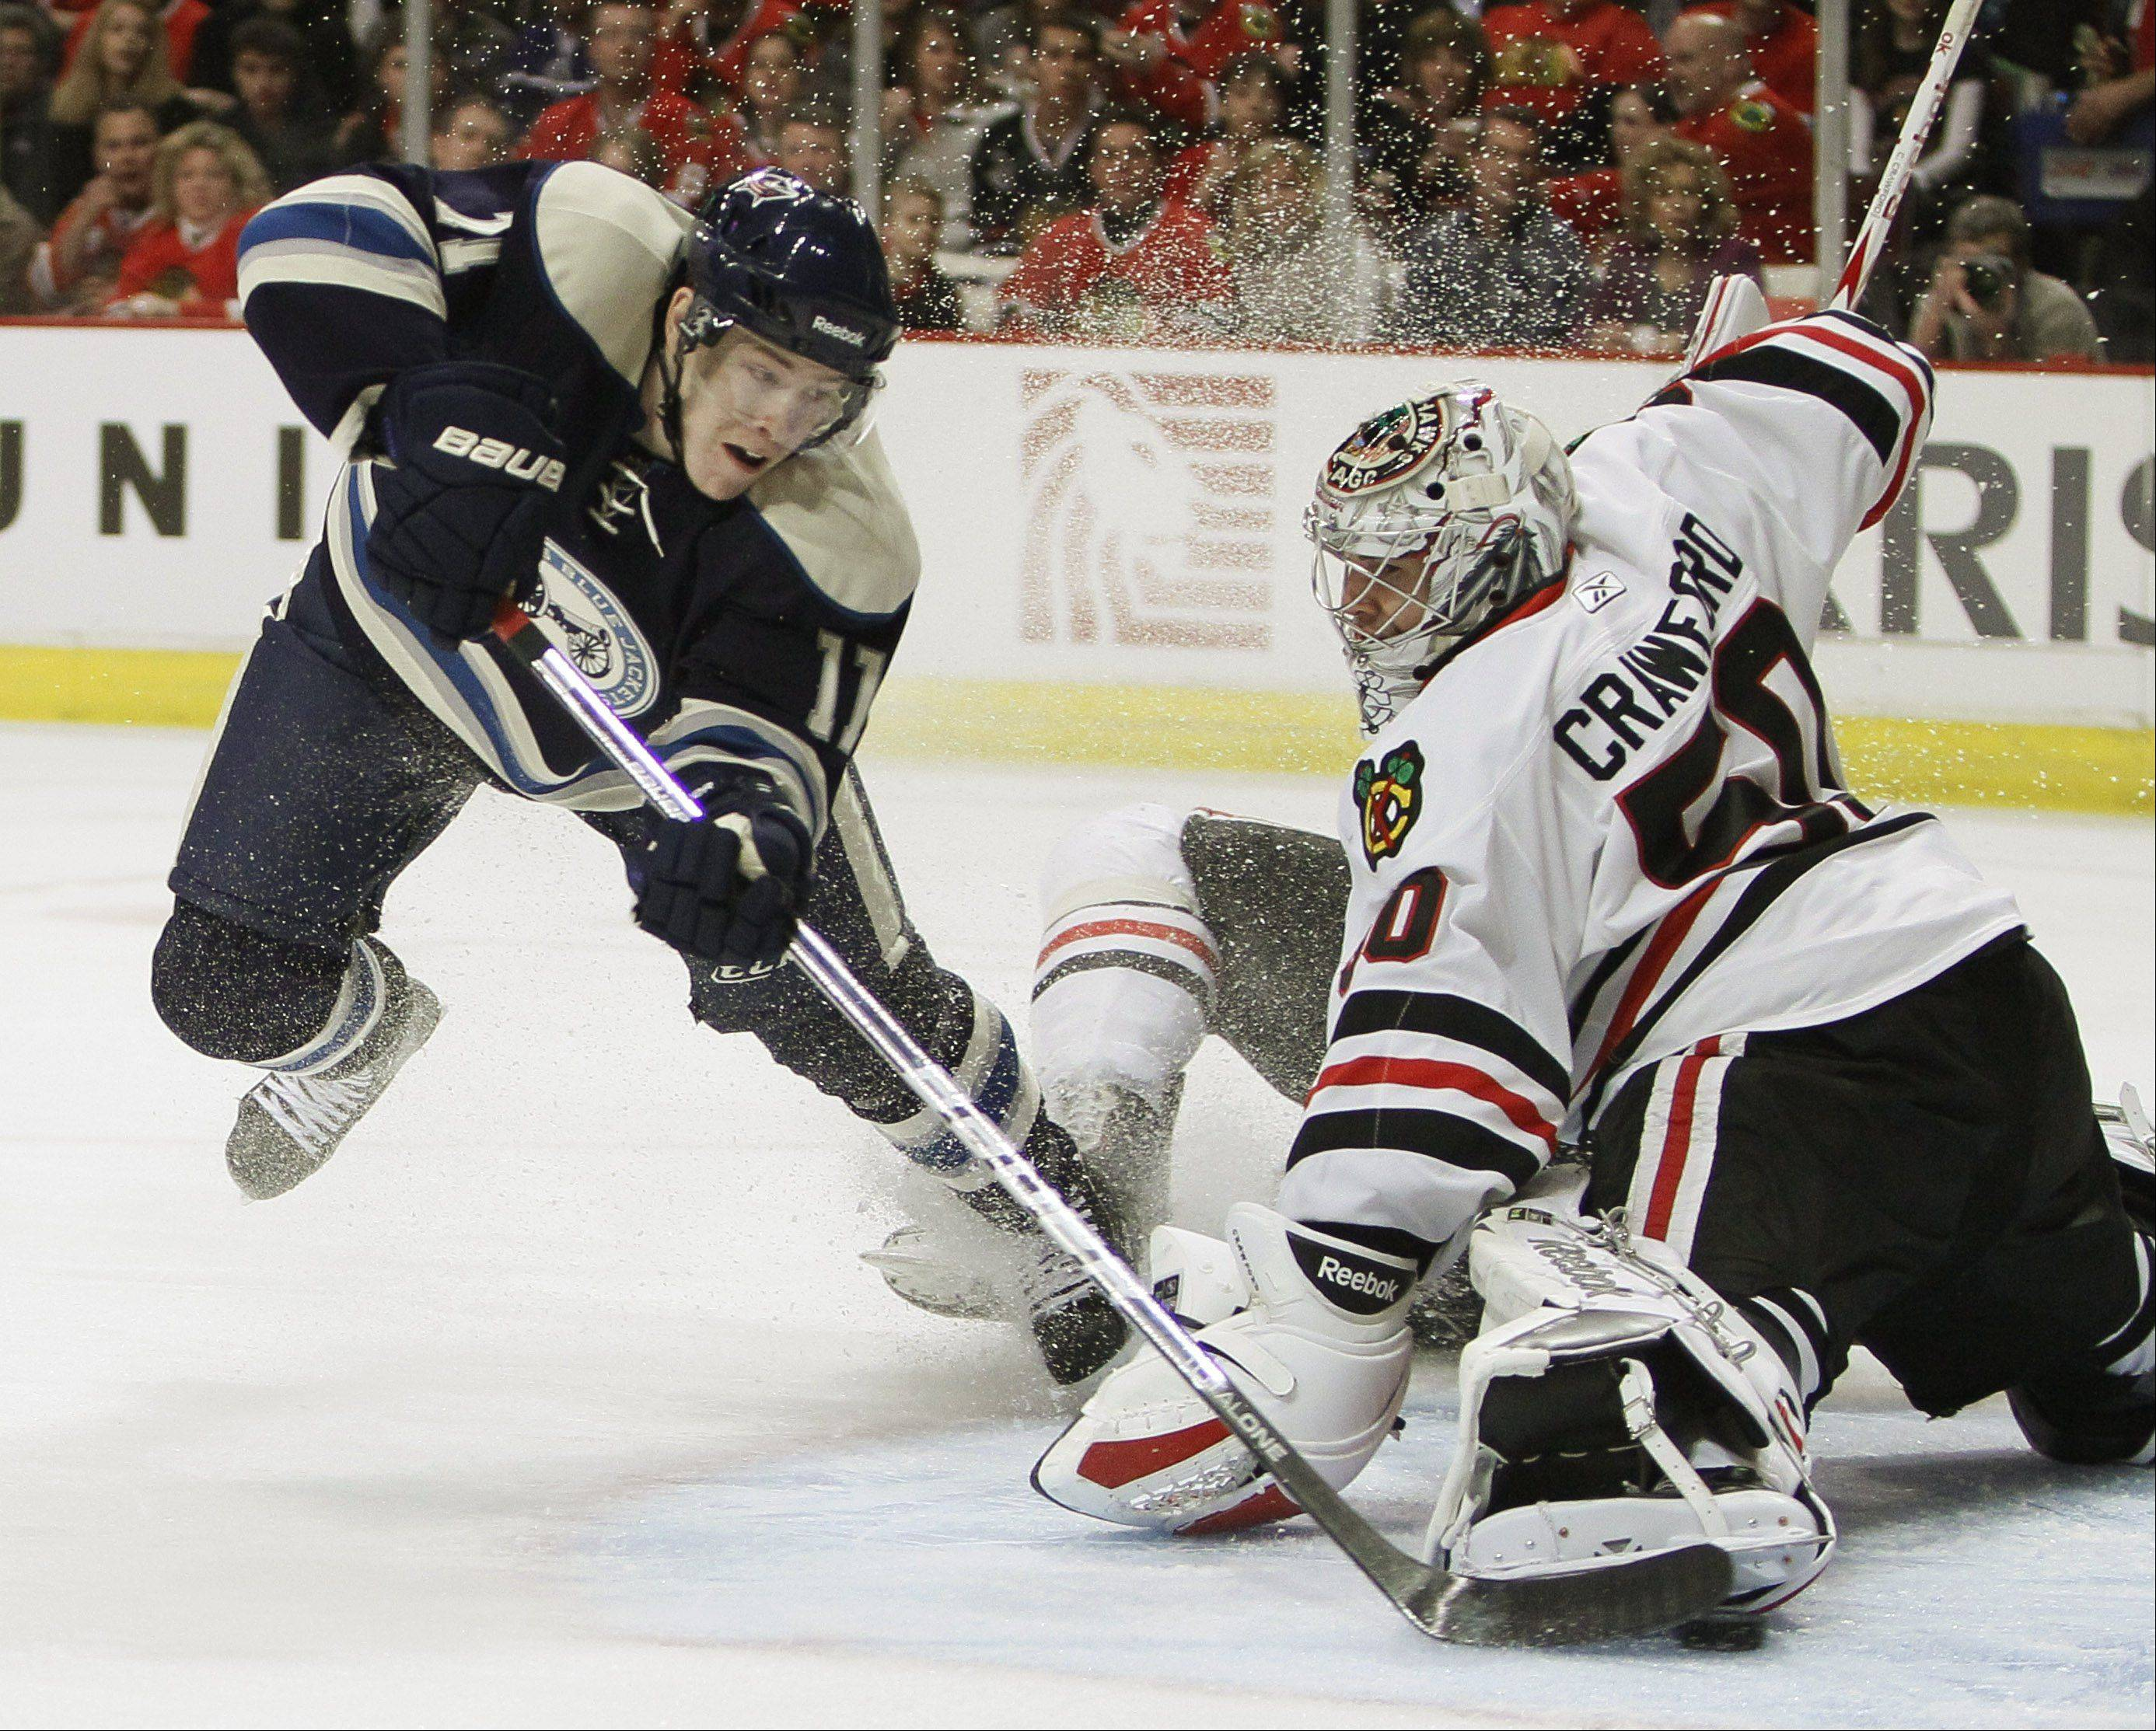 Columbus Blue Jackets winger Matt Calvert scores against Blackhawks goalie Corey Crawford last February. The Blue Jackets will be affiliated with the Chicago Express, which begins play at the Sears Centre in October.